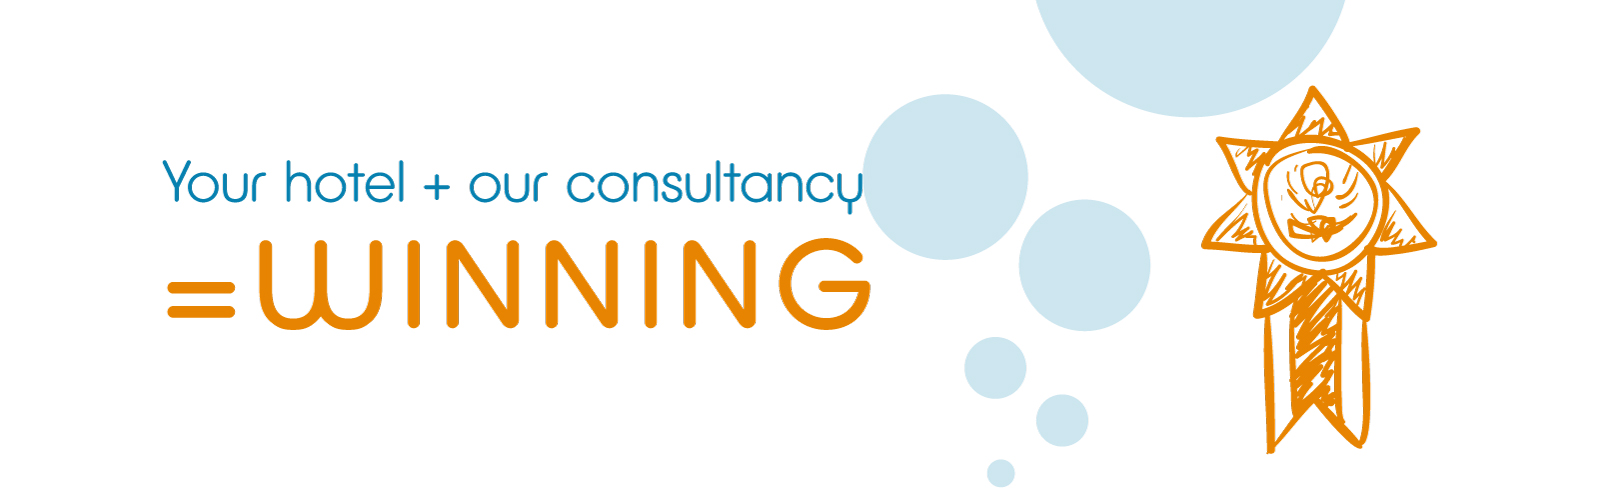 Revenue_management_consultants